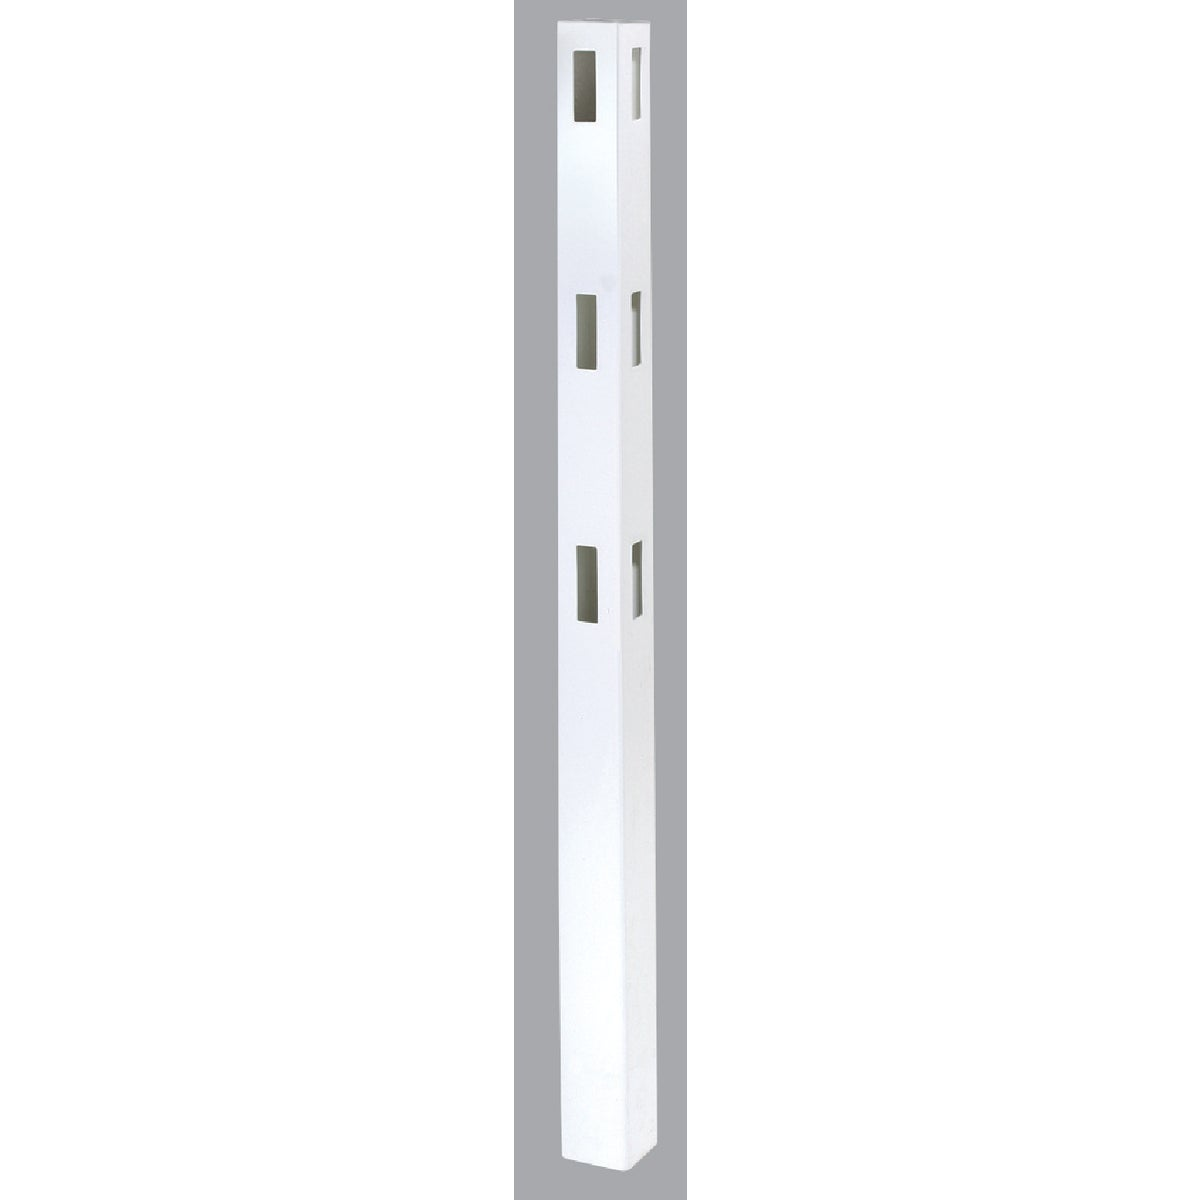 5X84 WHT 3-RAIL CRN POST - FW653C by Genova Bldg Products